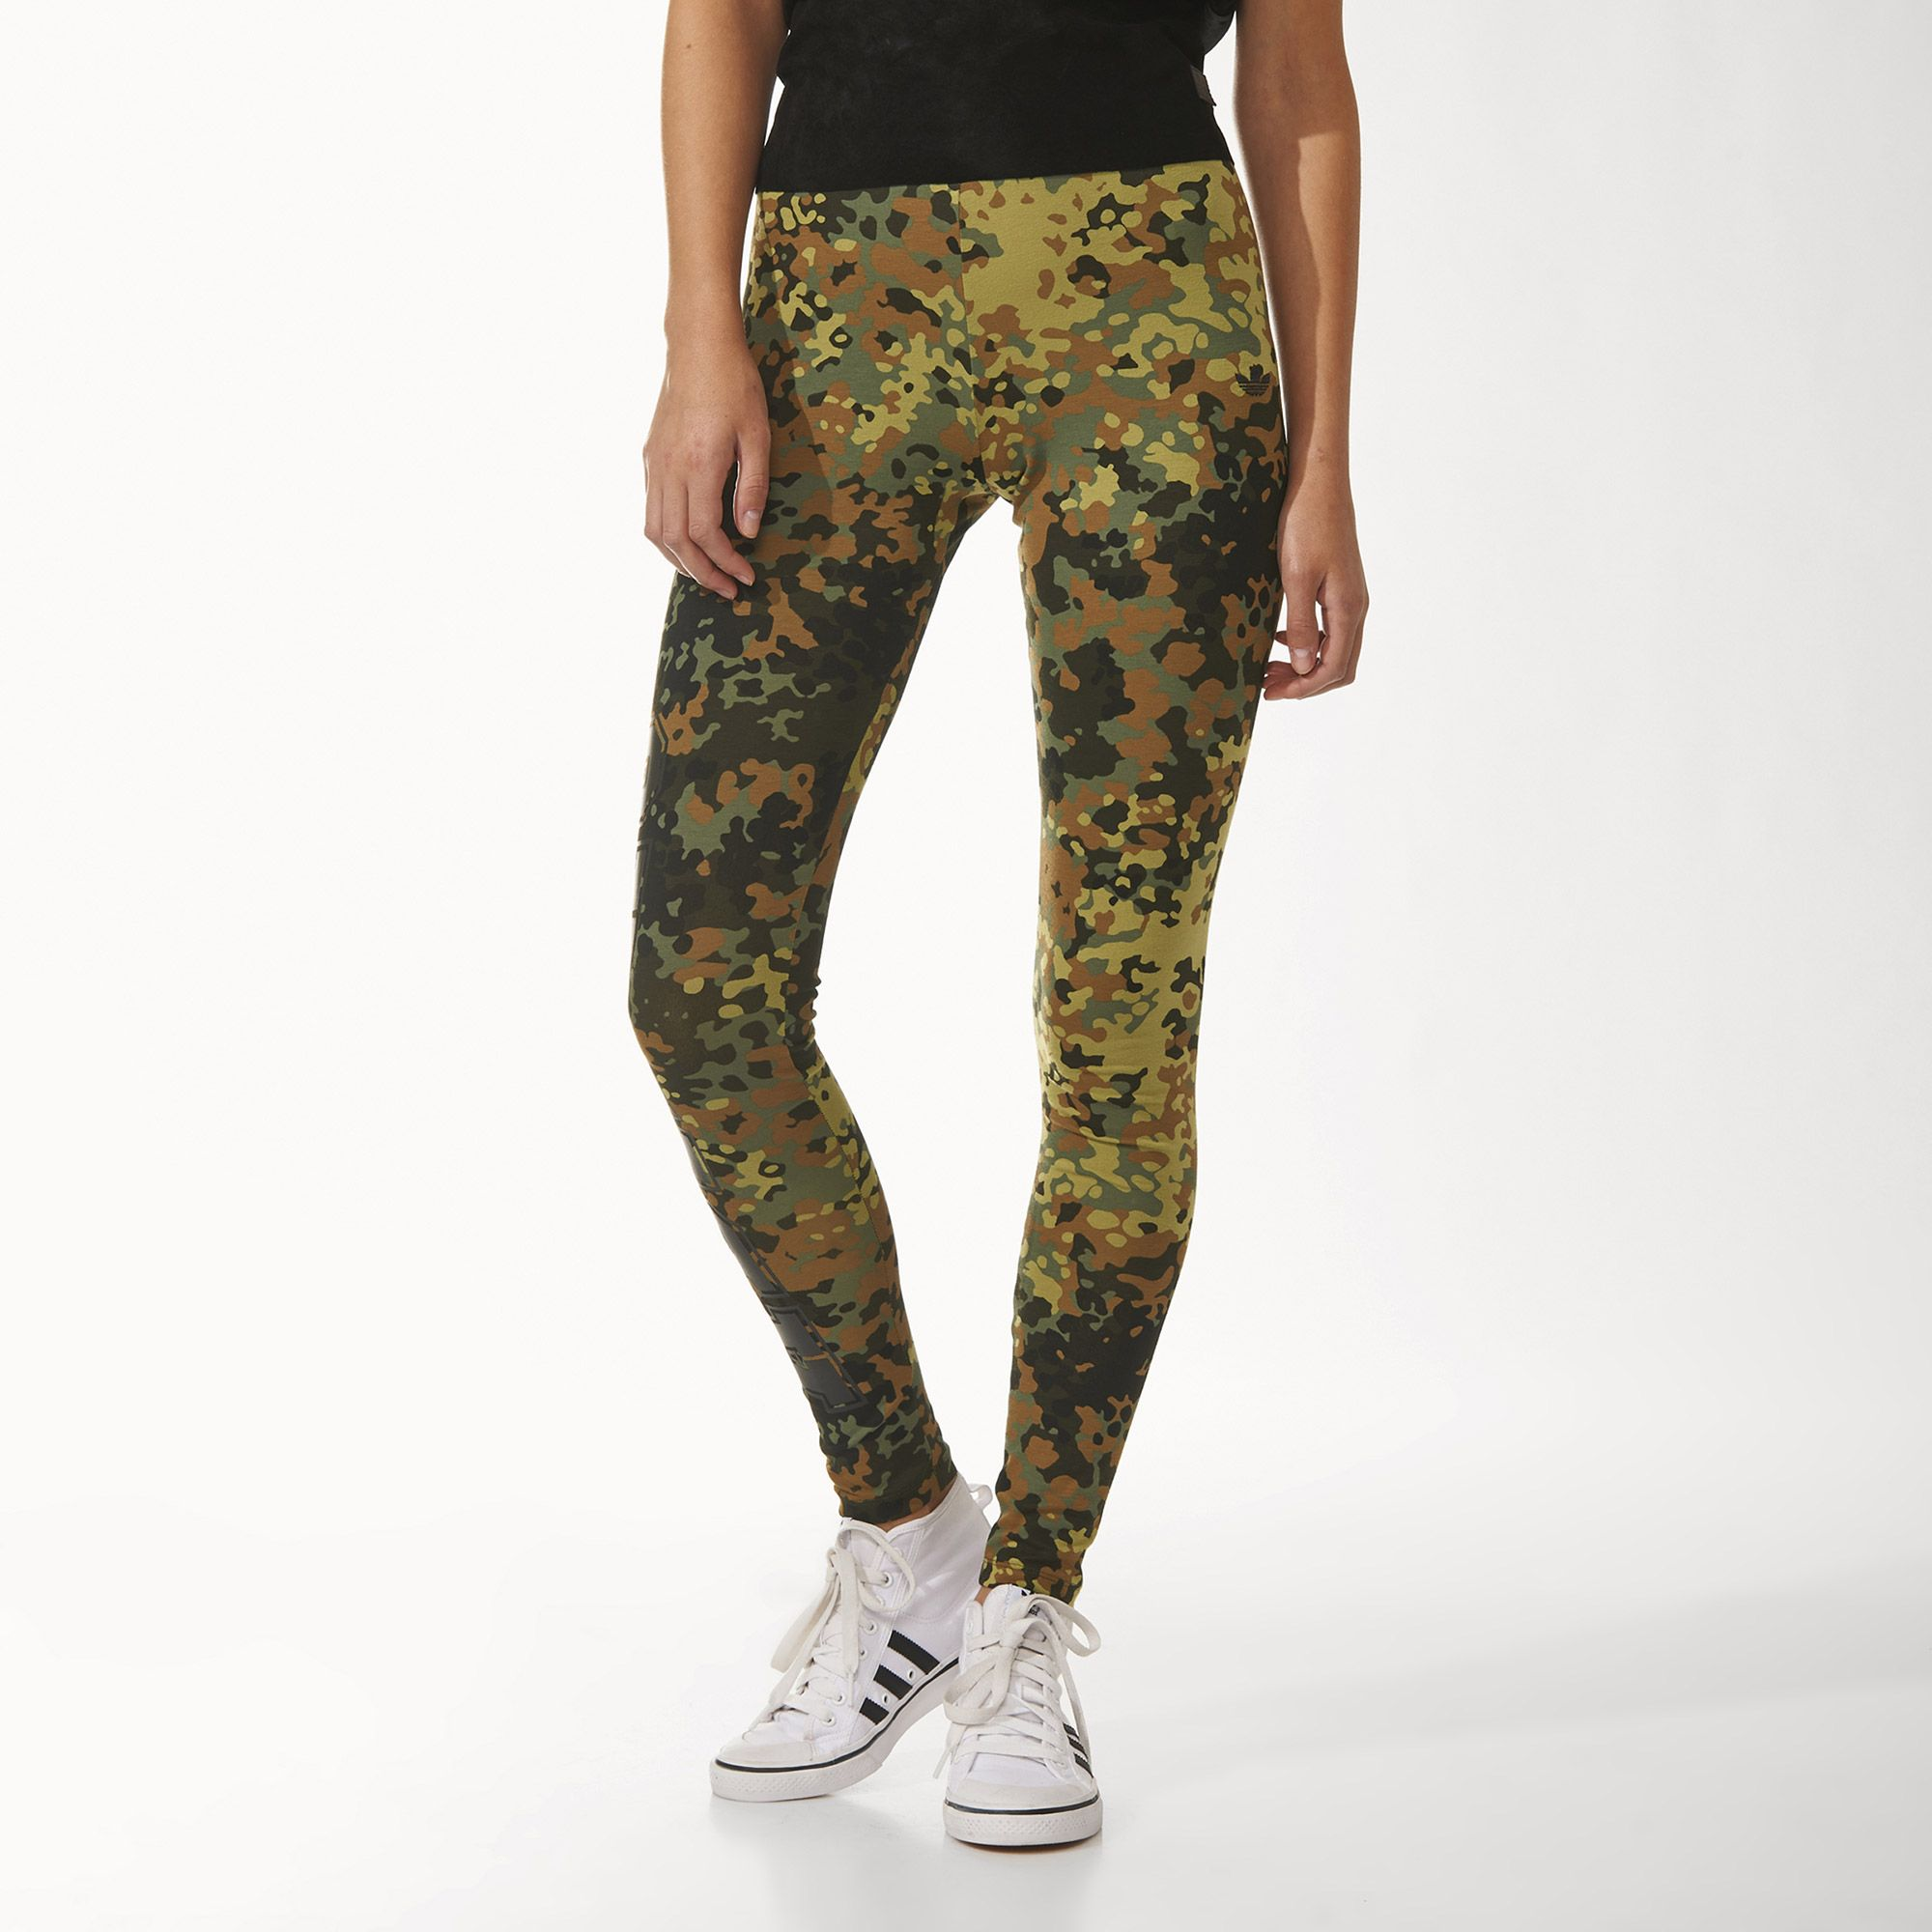 Uk adidas leggings Leggings Adidas pants Camouflage aqwEPP